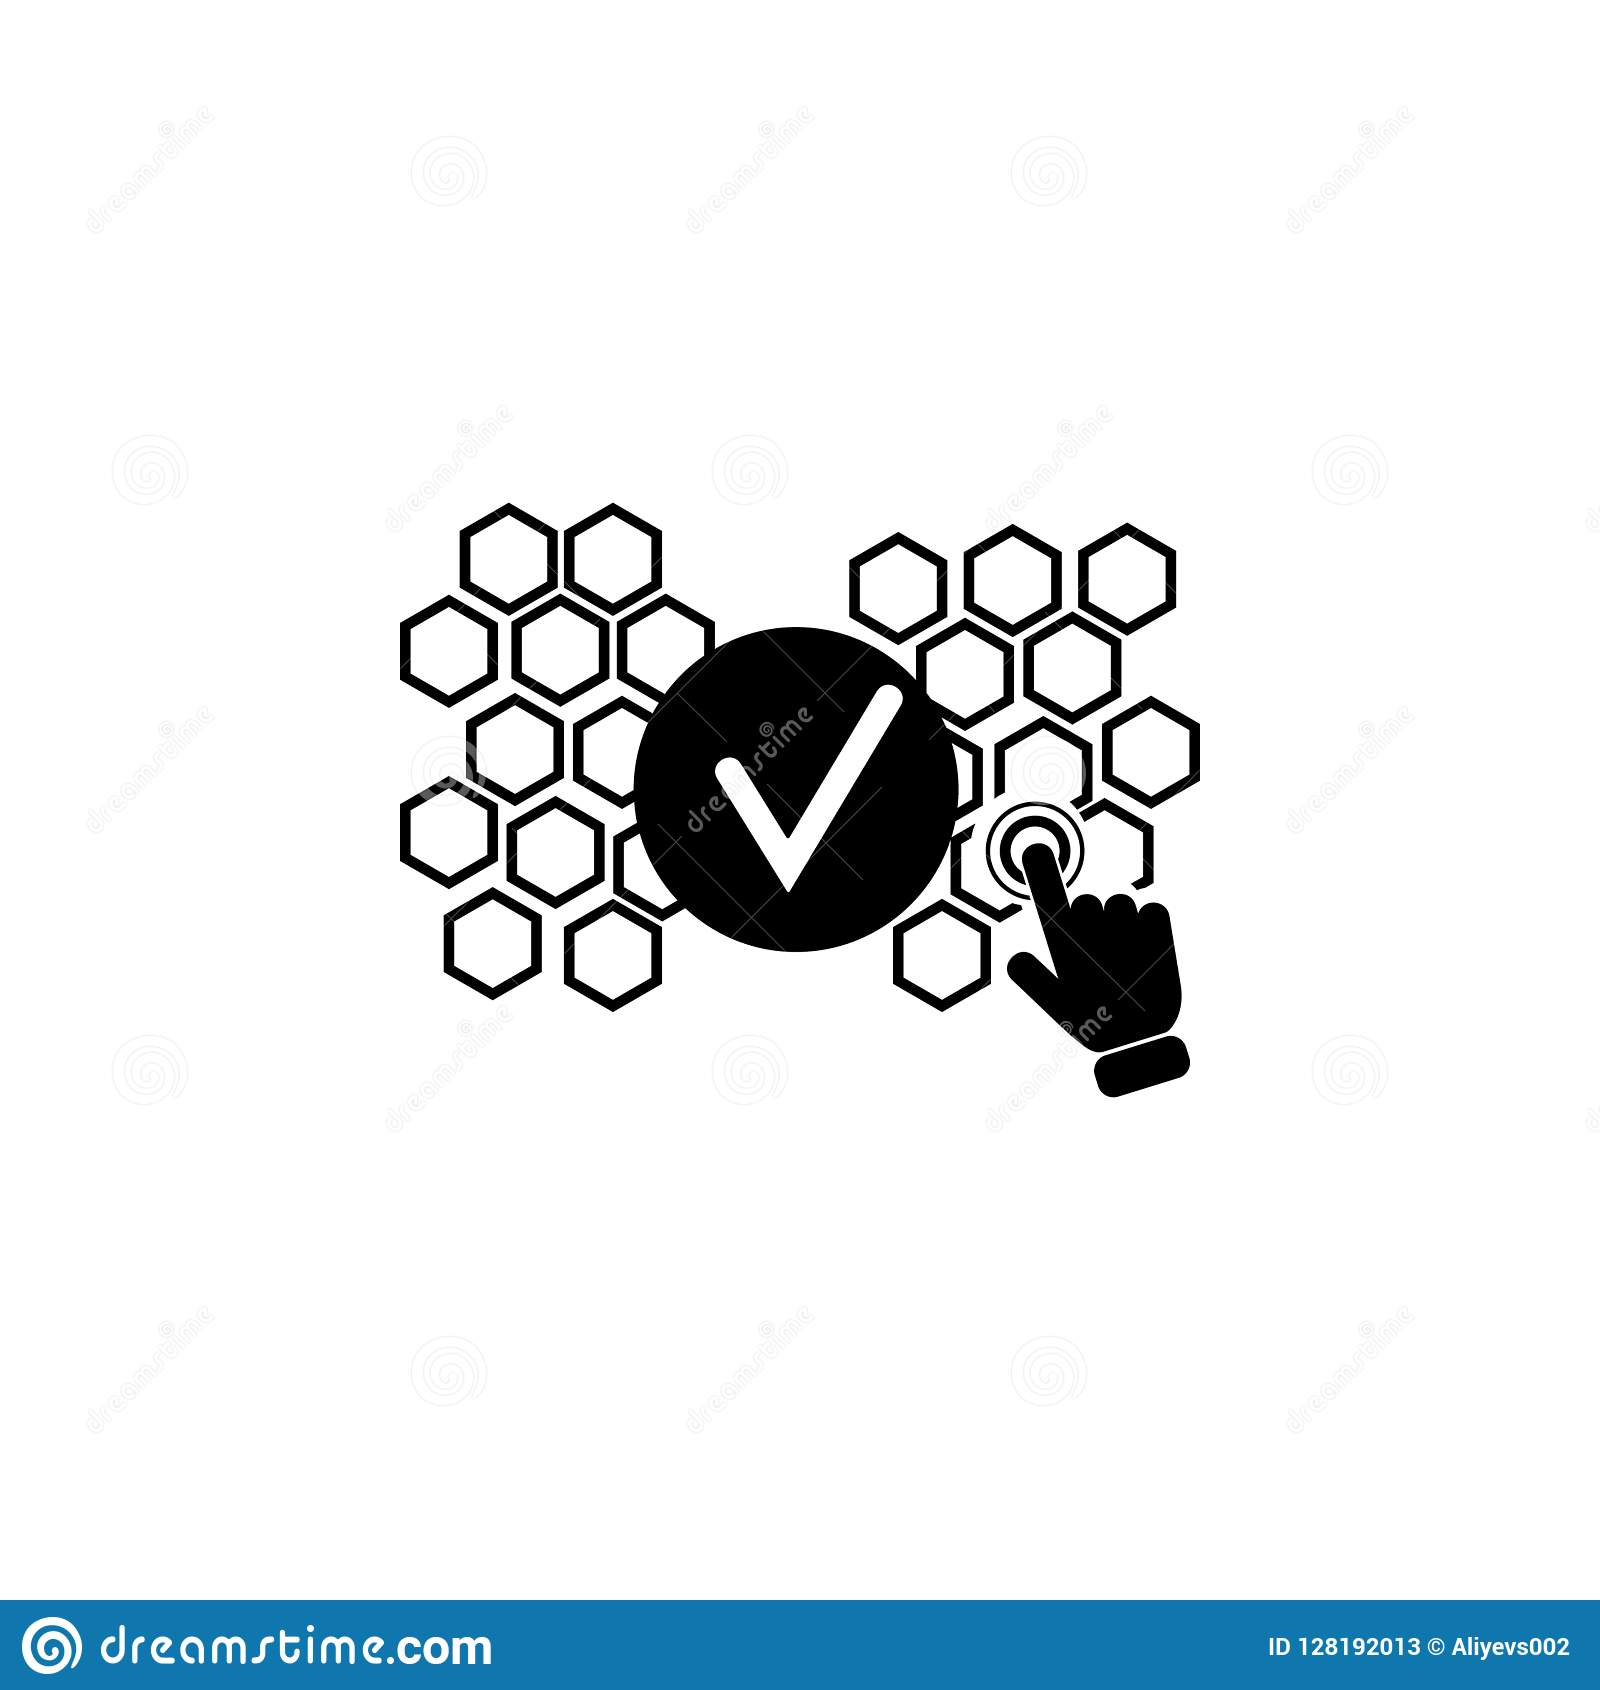 Validation process concept on touch screen icon. Element of touch screen technology icon. Premium quality graphic design icon. Sig